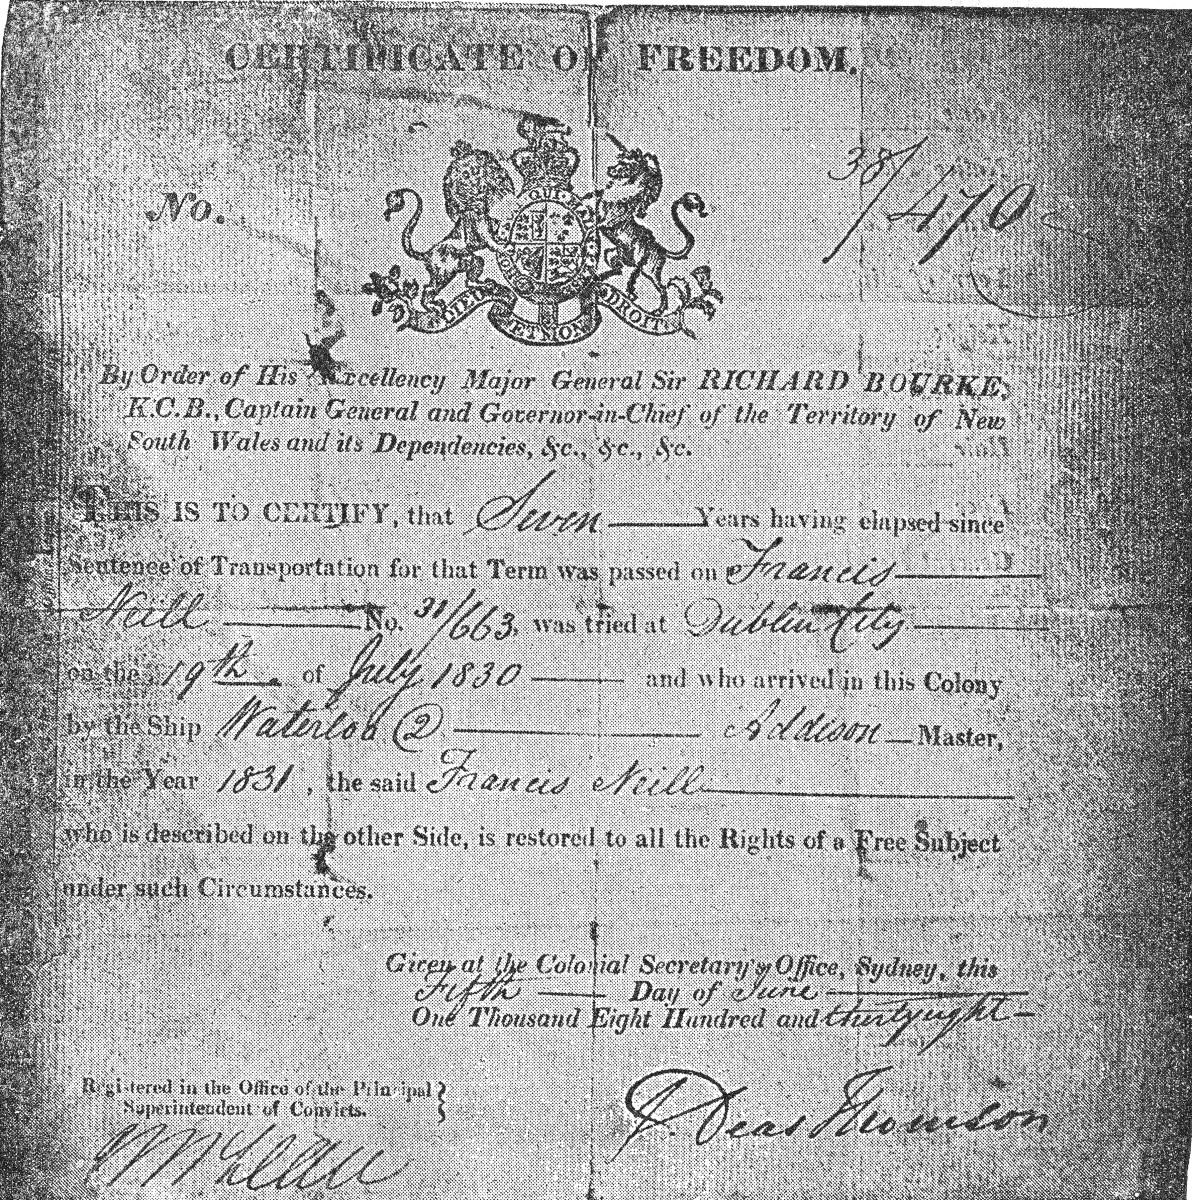 This certificate of freedom, dated June 5th, 1838, demonstrates that an Irish convict, Francis Neill, has completed his seven years of obligatory labor in the penal colony of New South Wales, Australia.